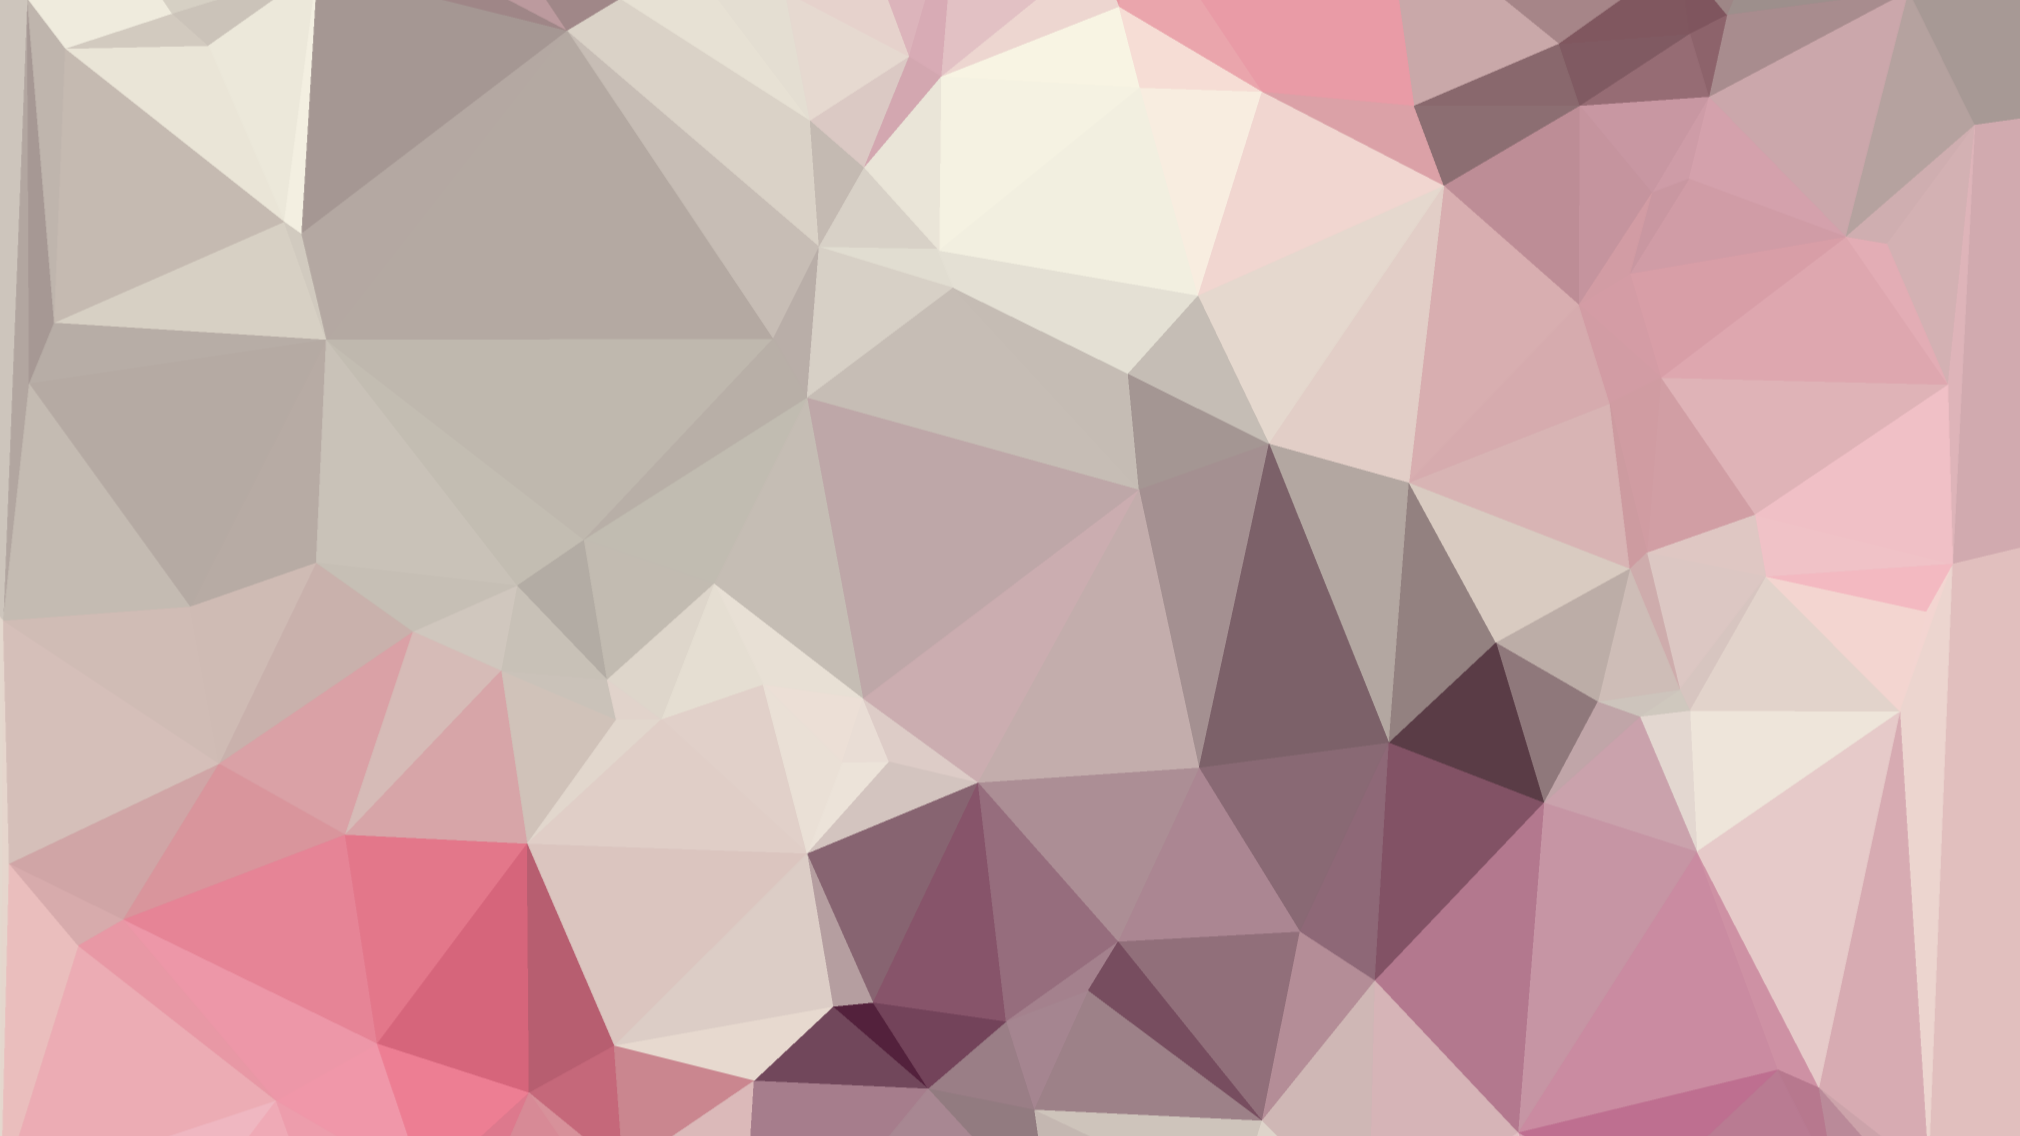 Wallpaper geometric color 25 2k uhd by airworldking on - Geometric wallpaper colorful ...